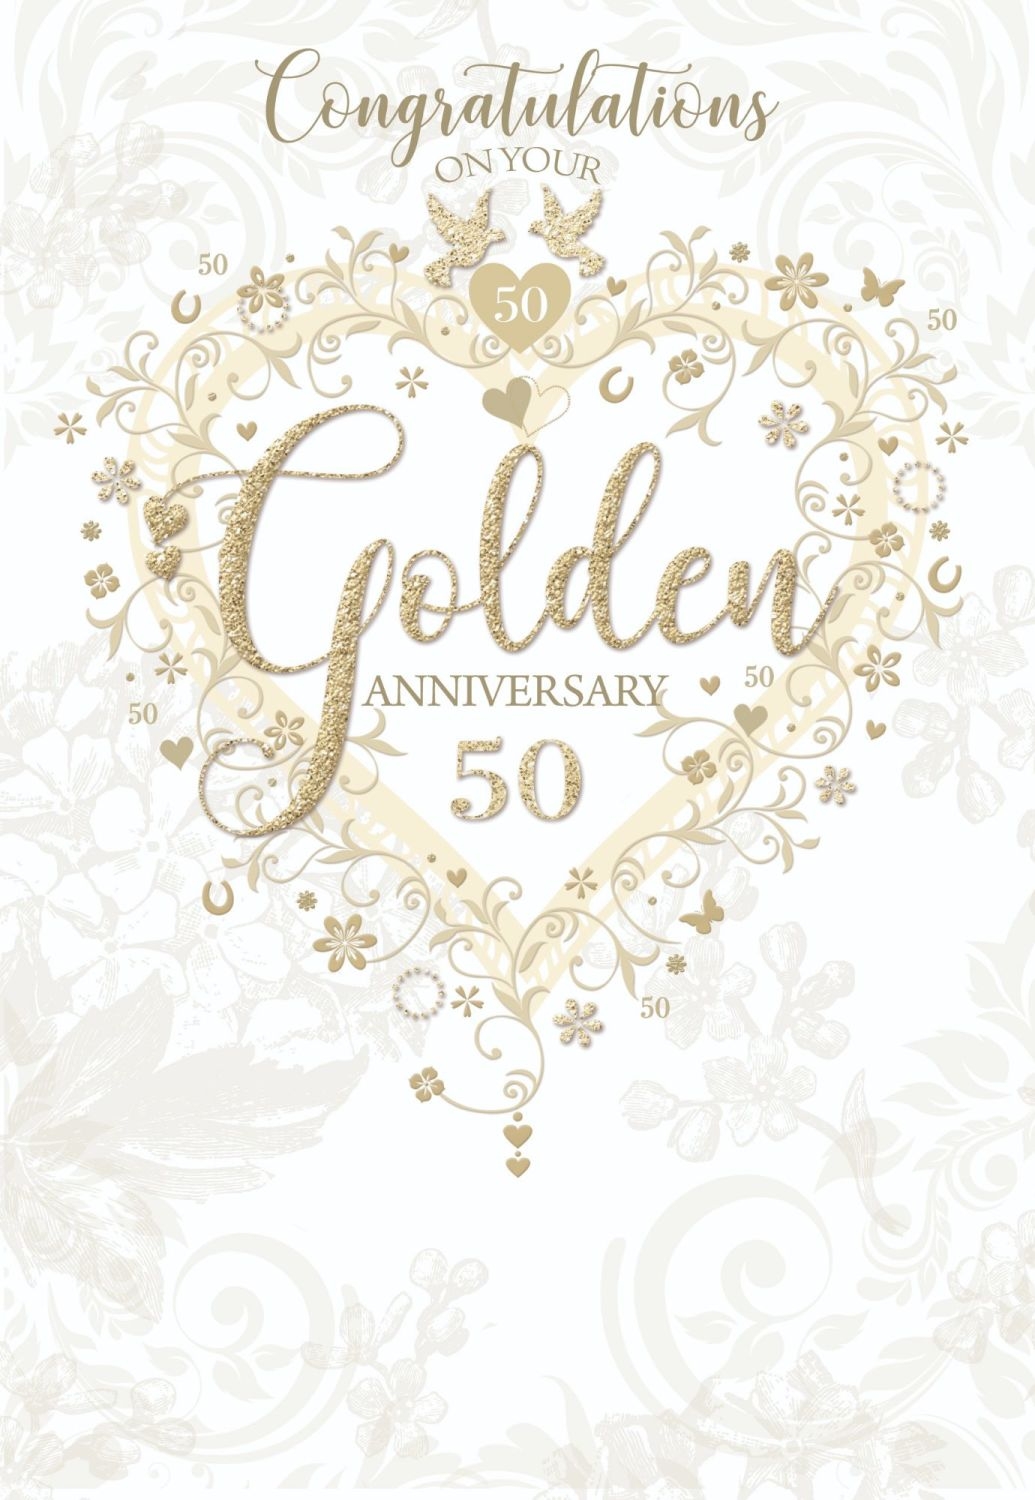 Golden 50th Wedding Anniversay Cards - CONGRATULATIONS On Your GOLDEN Anniv